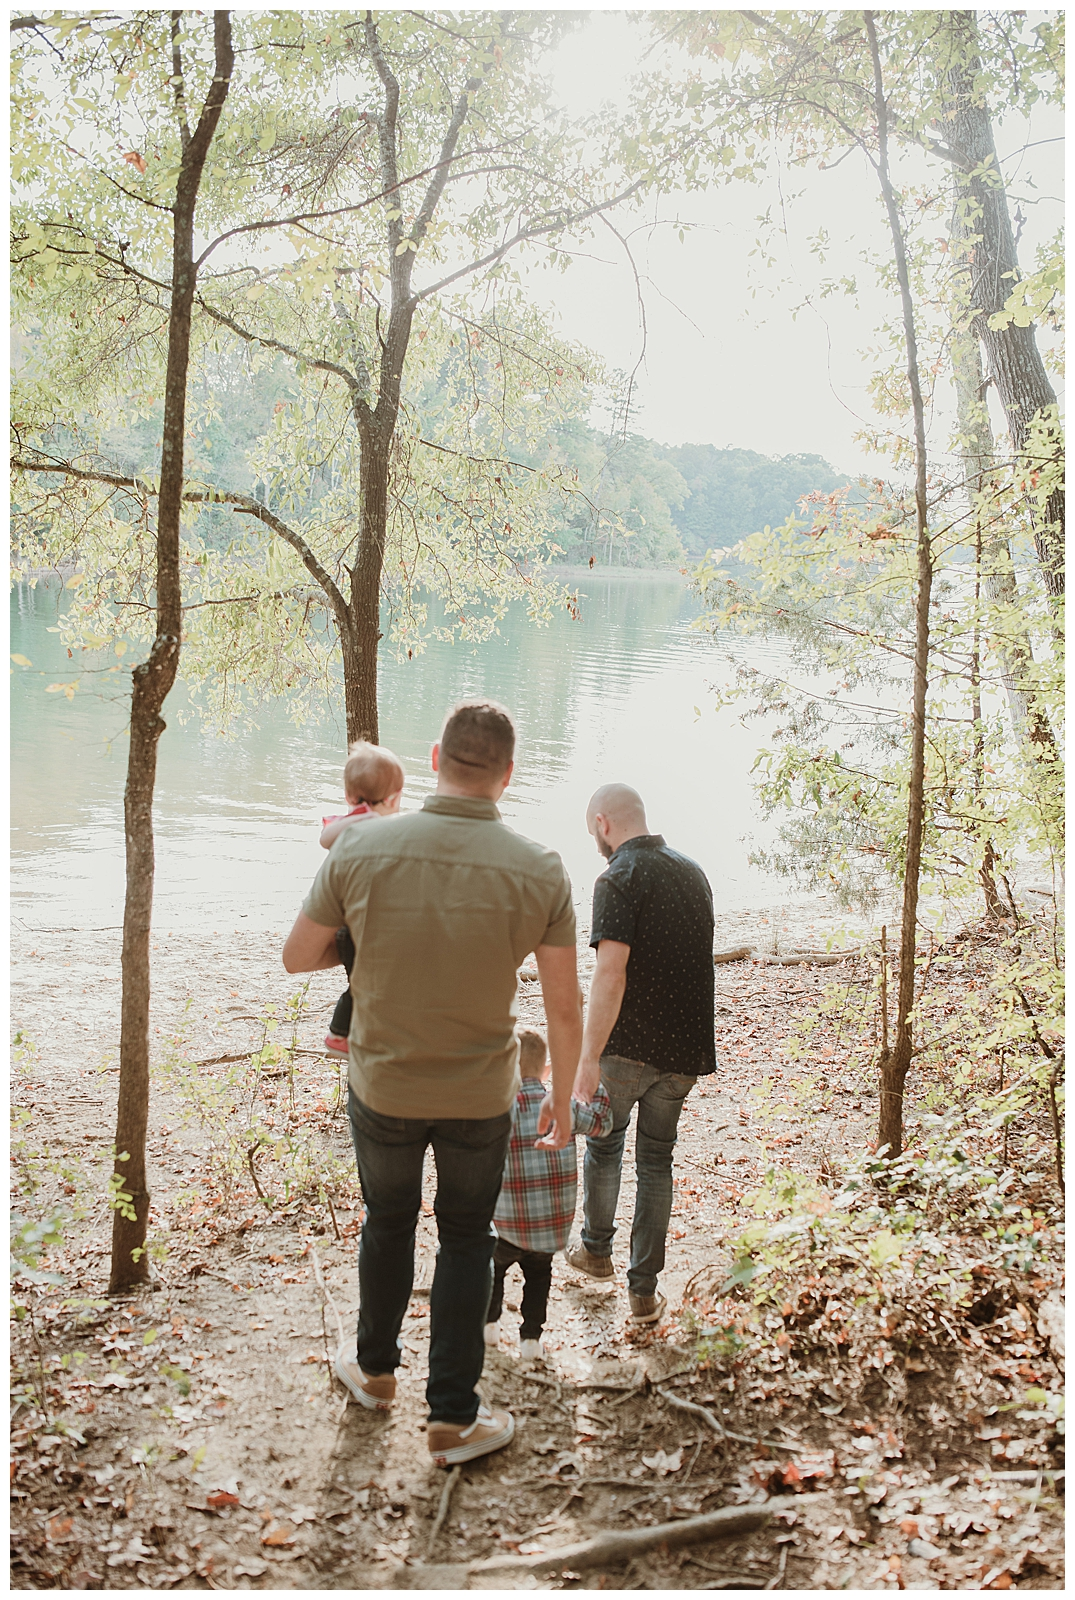 Stephen and Shawn Family 2020